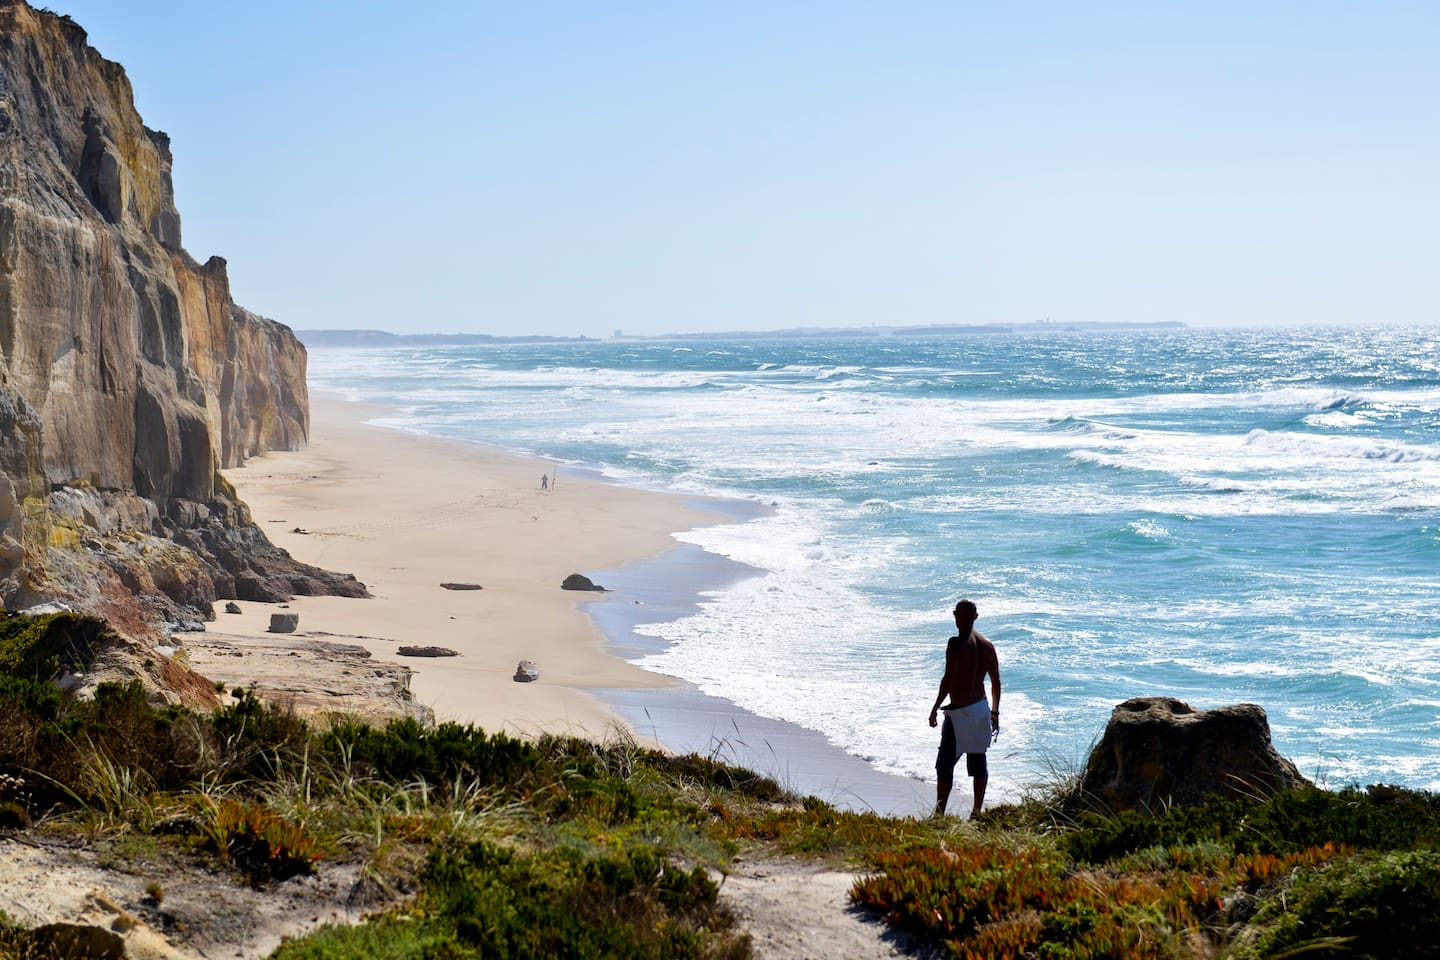 We love our guests to have a great time here in Baleal, fully immersed in nature and surrounded by the ocean